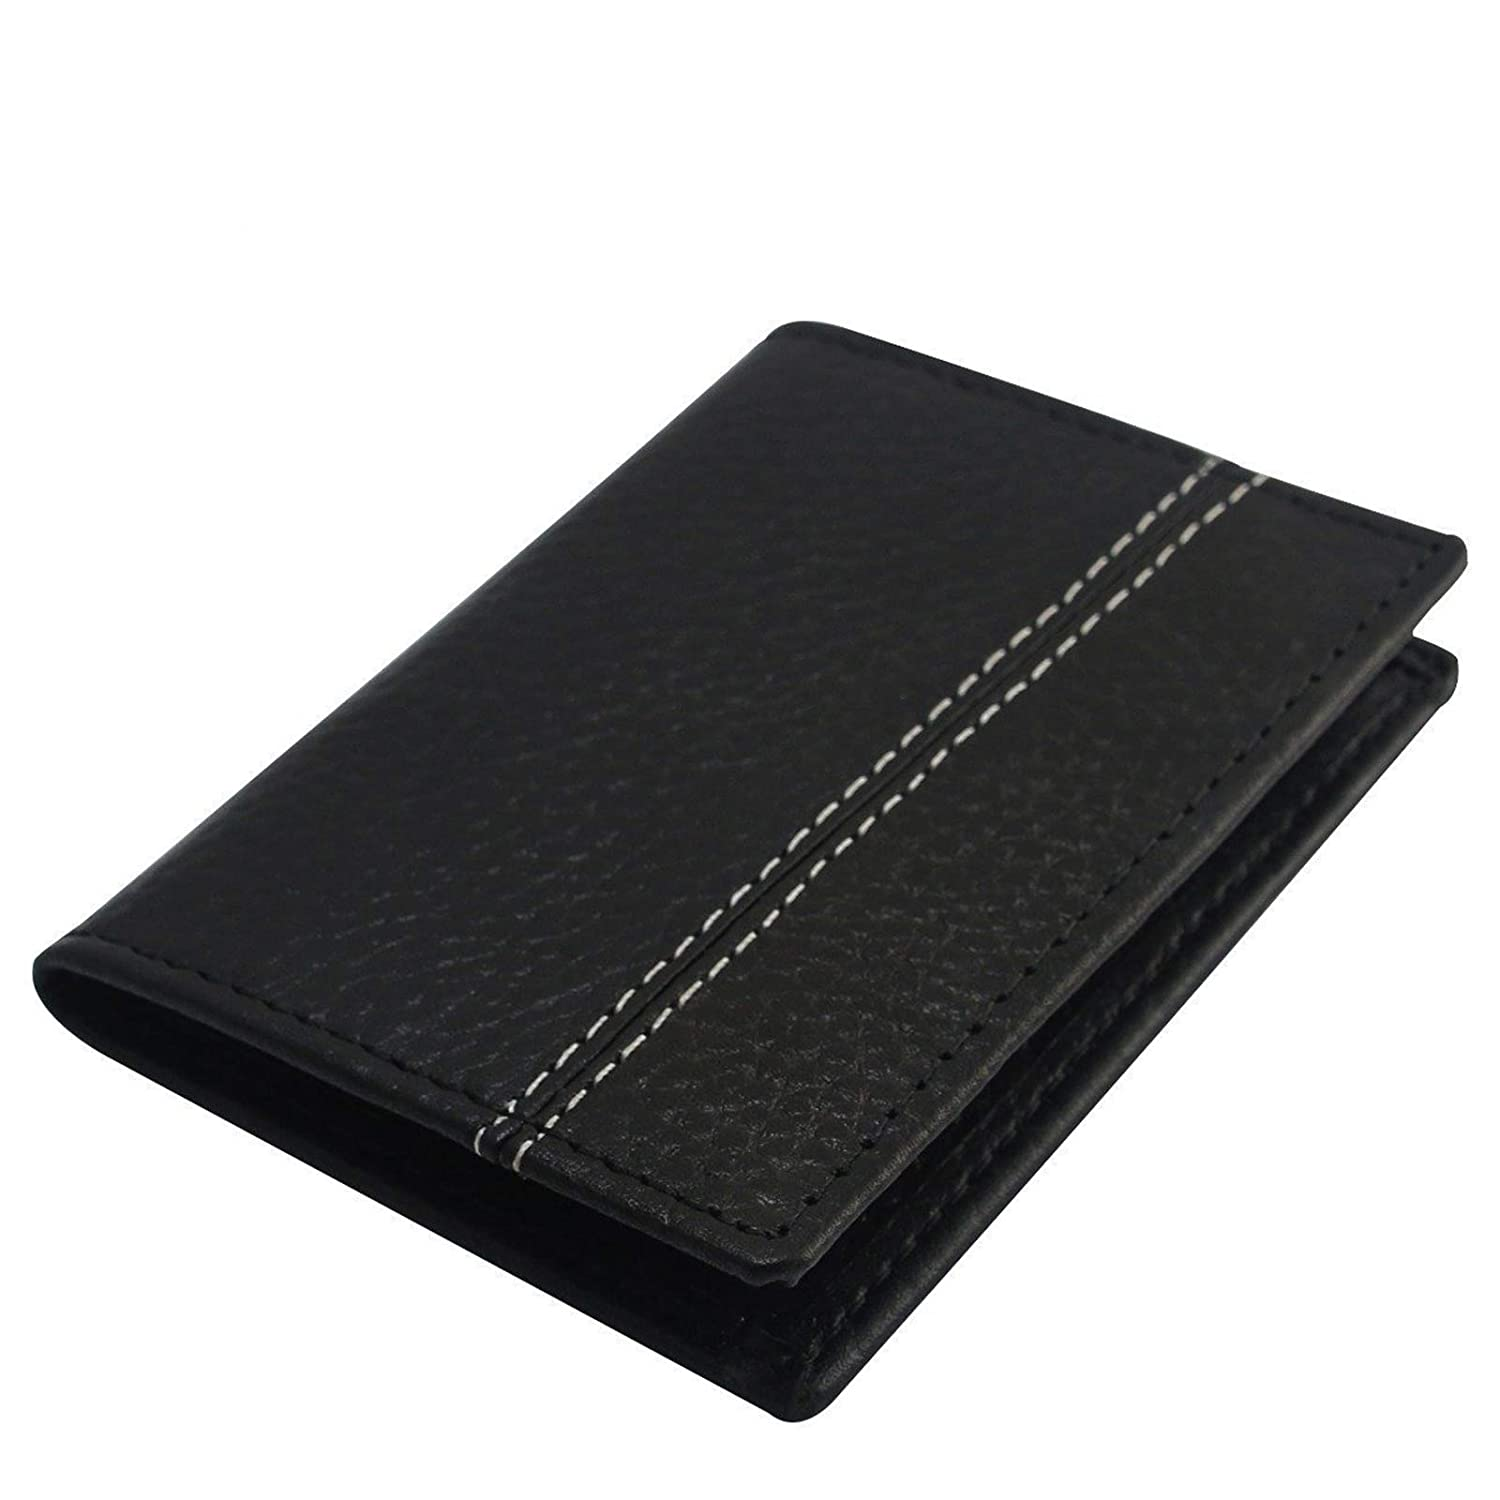 sports shoes d363a 3cd66 Men's RFID Blocking Real Leather Black Credit Card Holder, ID Holder,Slim  Wallet,Card Case (Black)